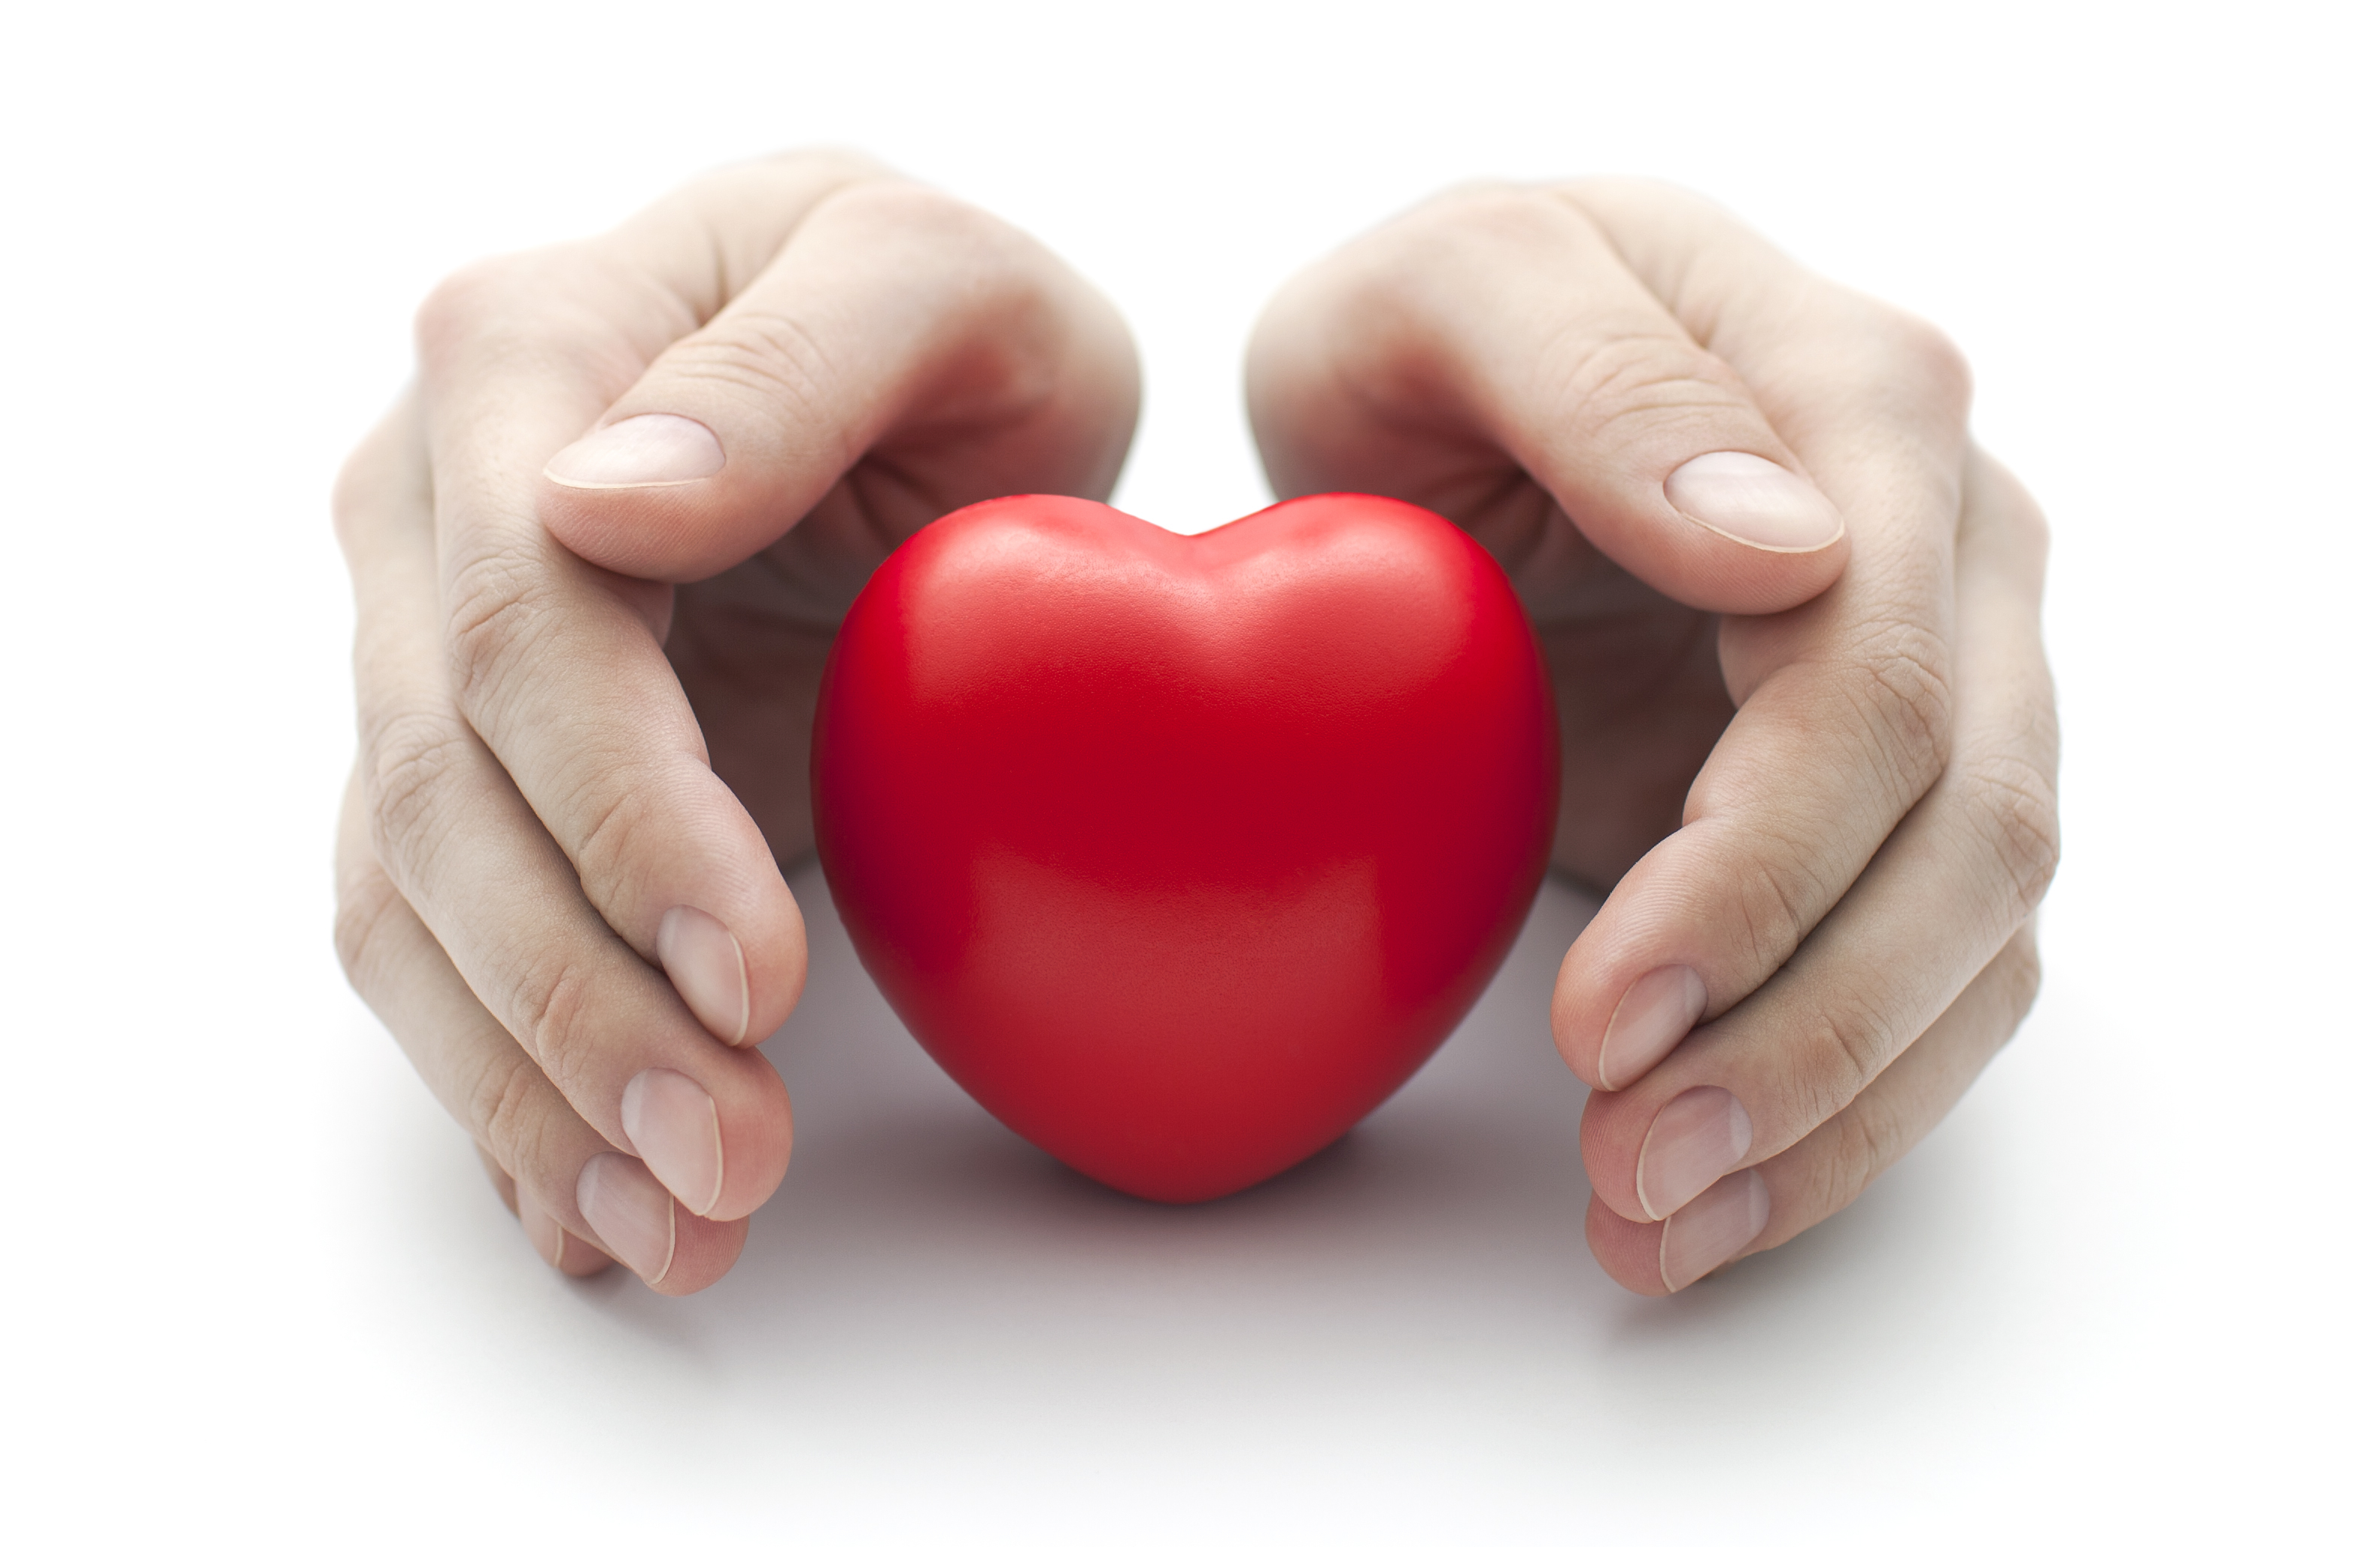 world heart day Please wear red tomorrow tomorrow, friday september 29th is world  heart day please wear red to raise awareness for the day.